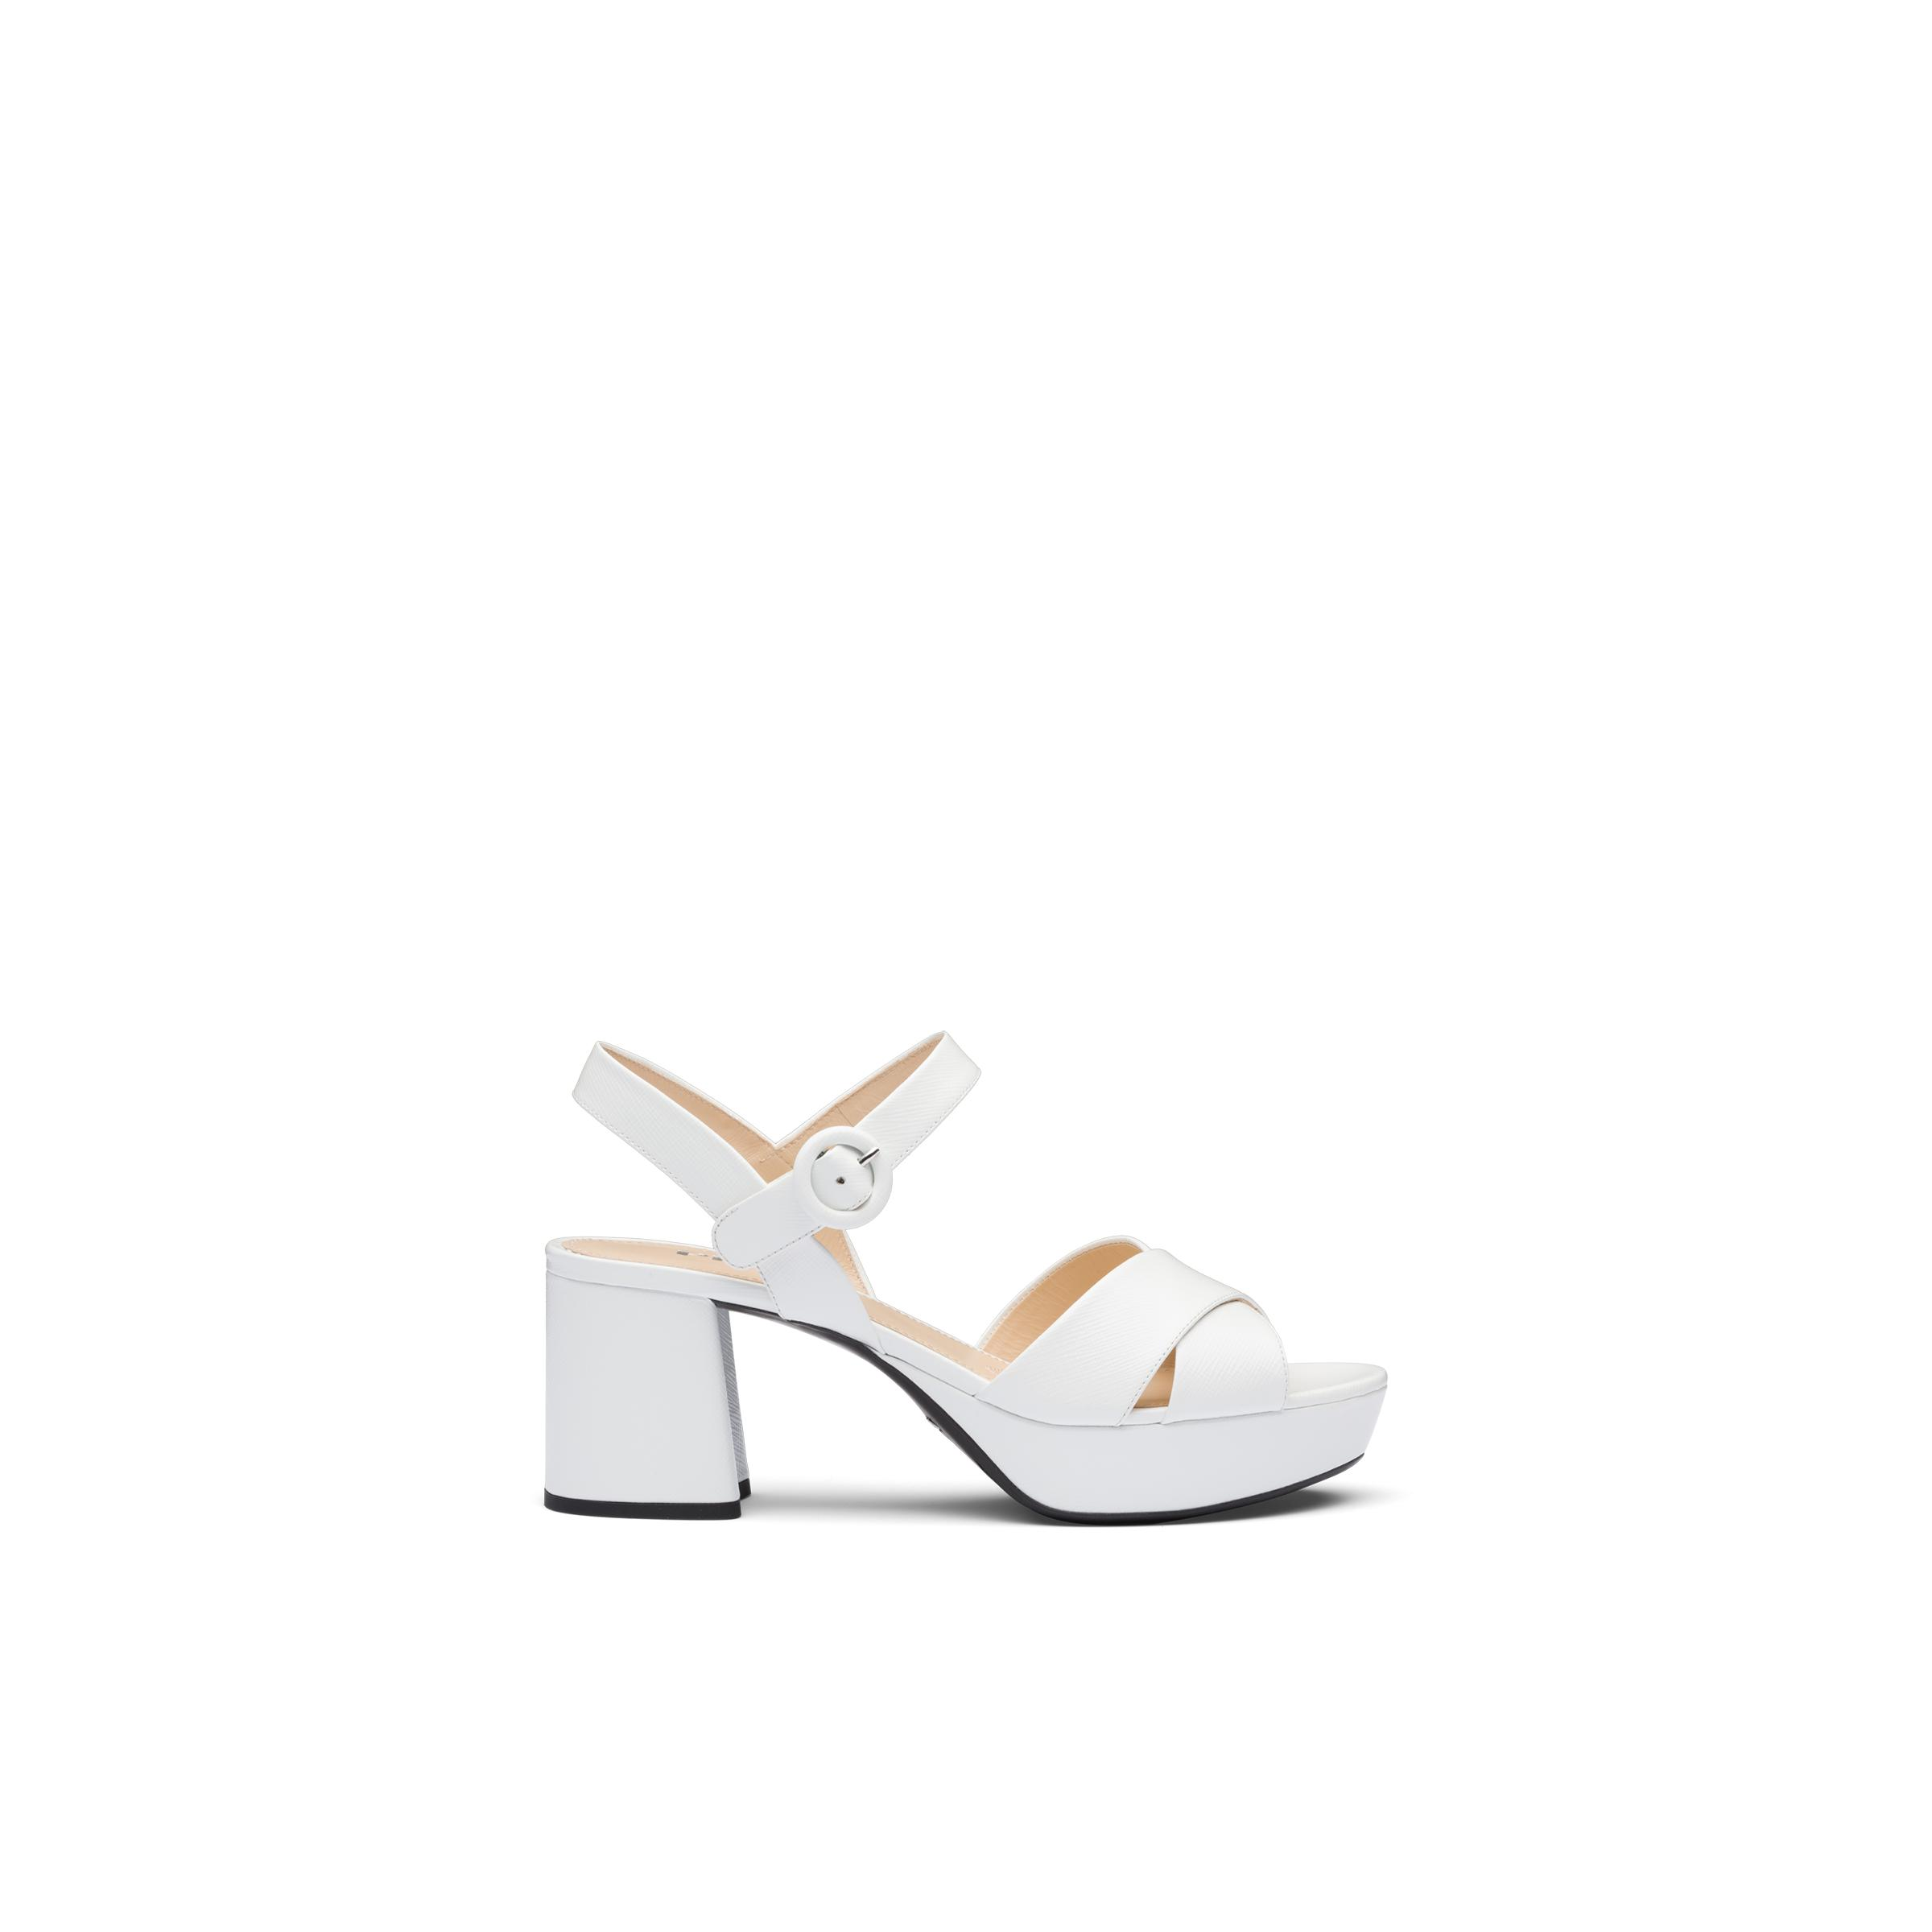 Patent Leather Sandals Women White 2